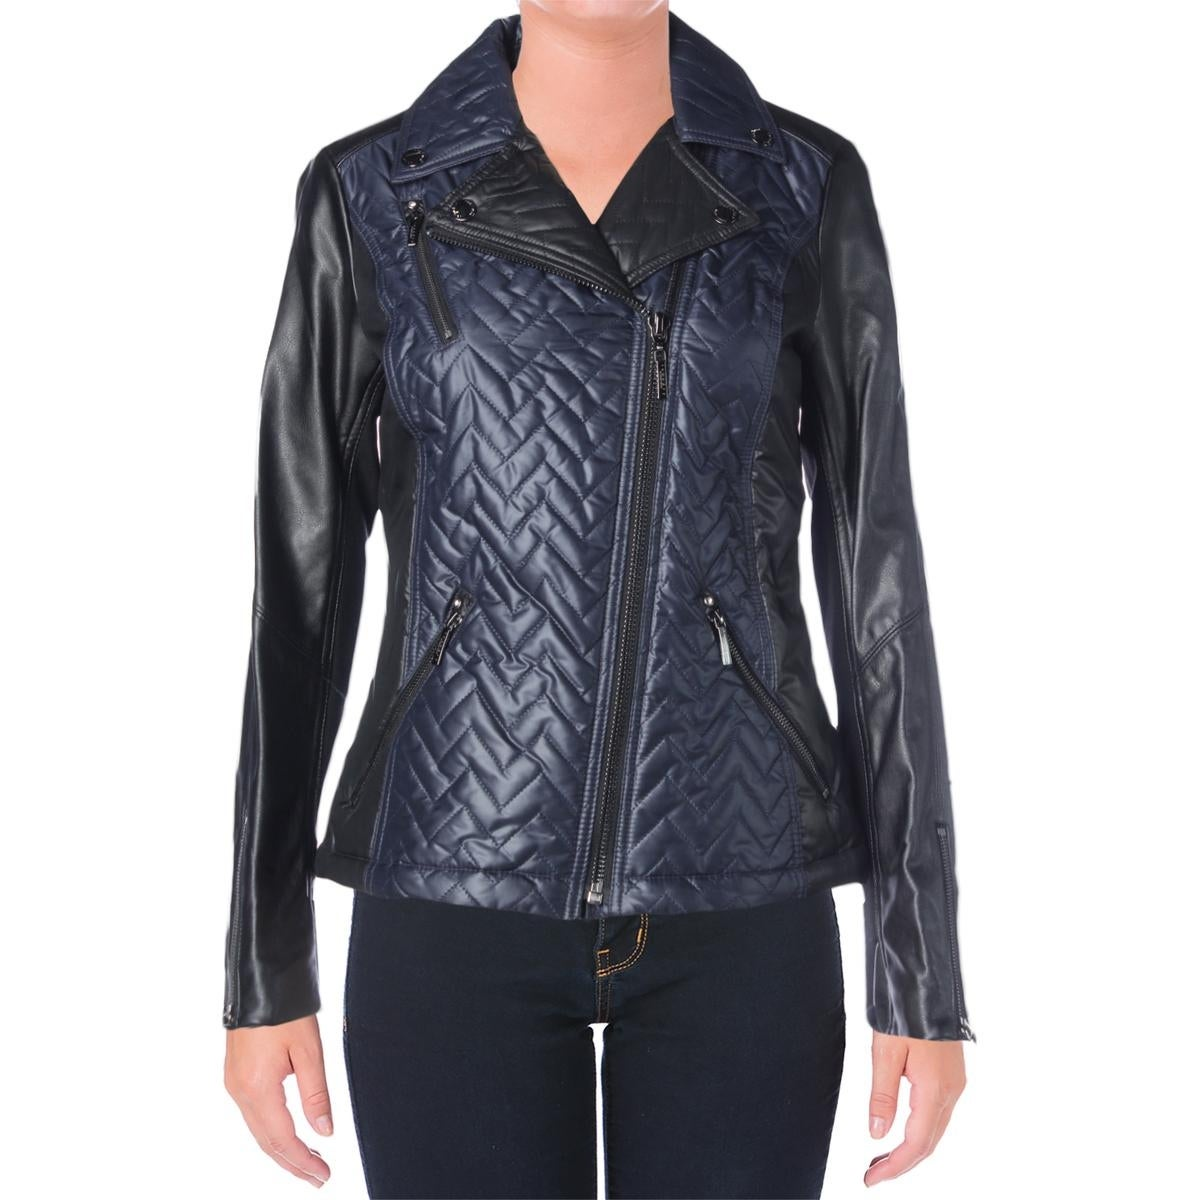 Laundry by Shelli Segal Womens Motorcycle Jacket Faux Leather Trim Zip Front - Thumbnail 6